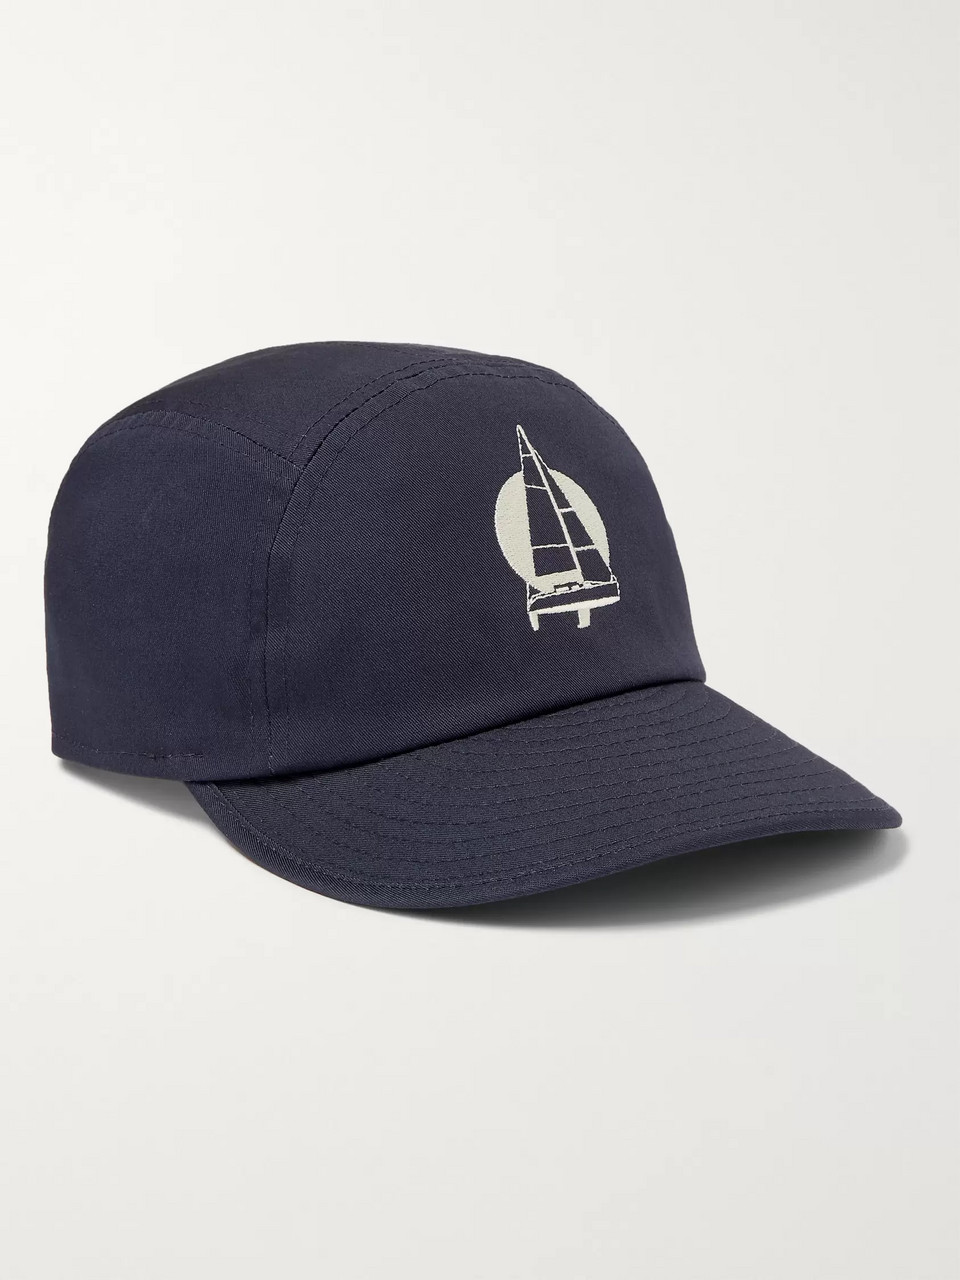 Arpenteur Embroidered Cotton-Twill Baseball Cap